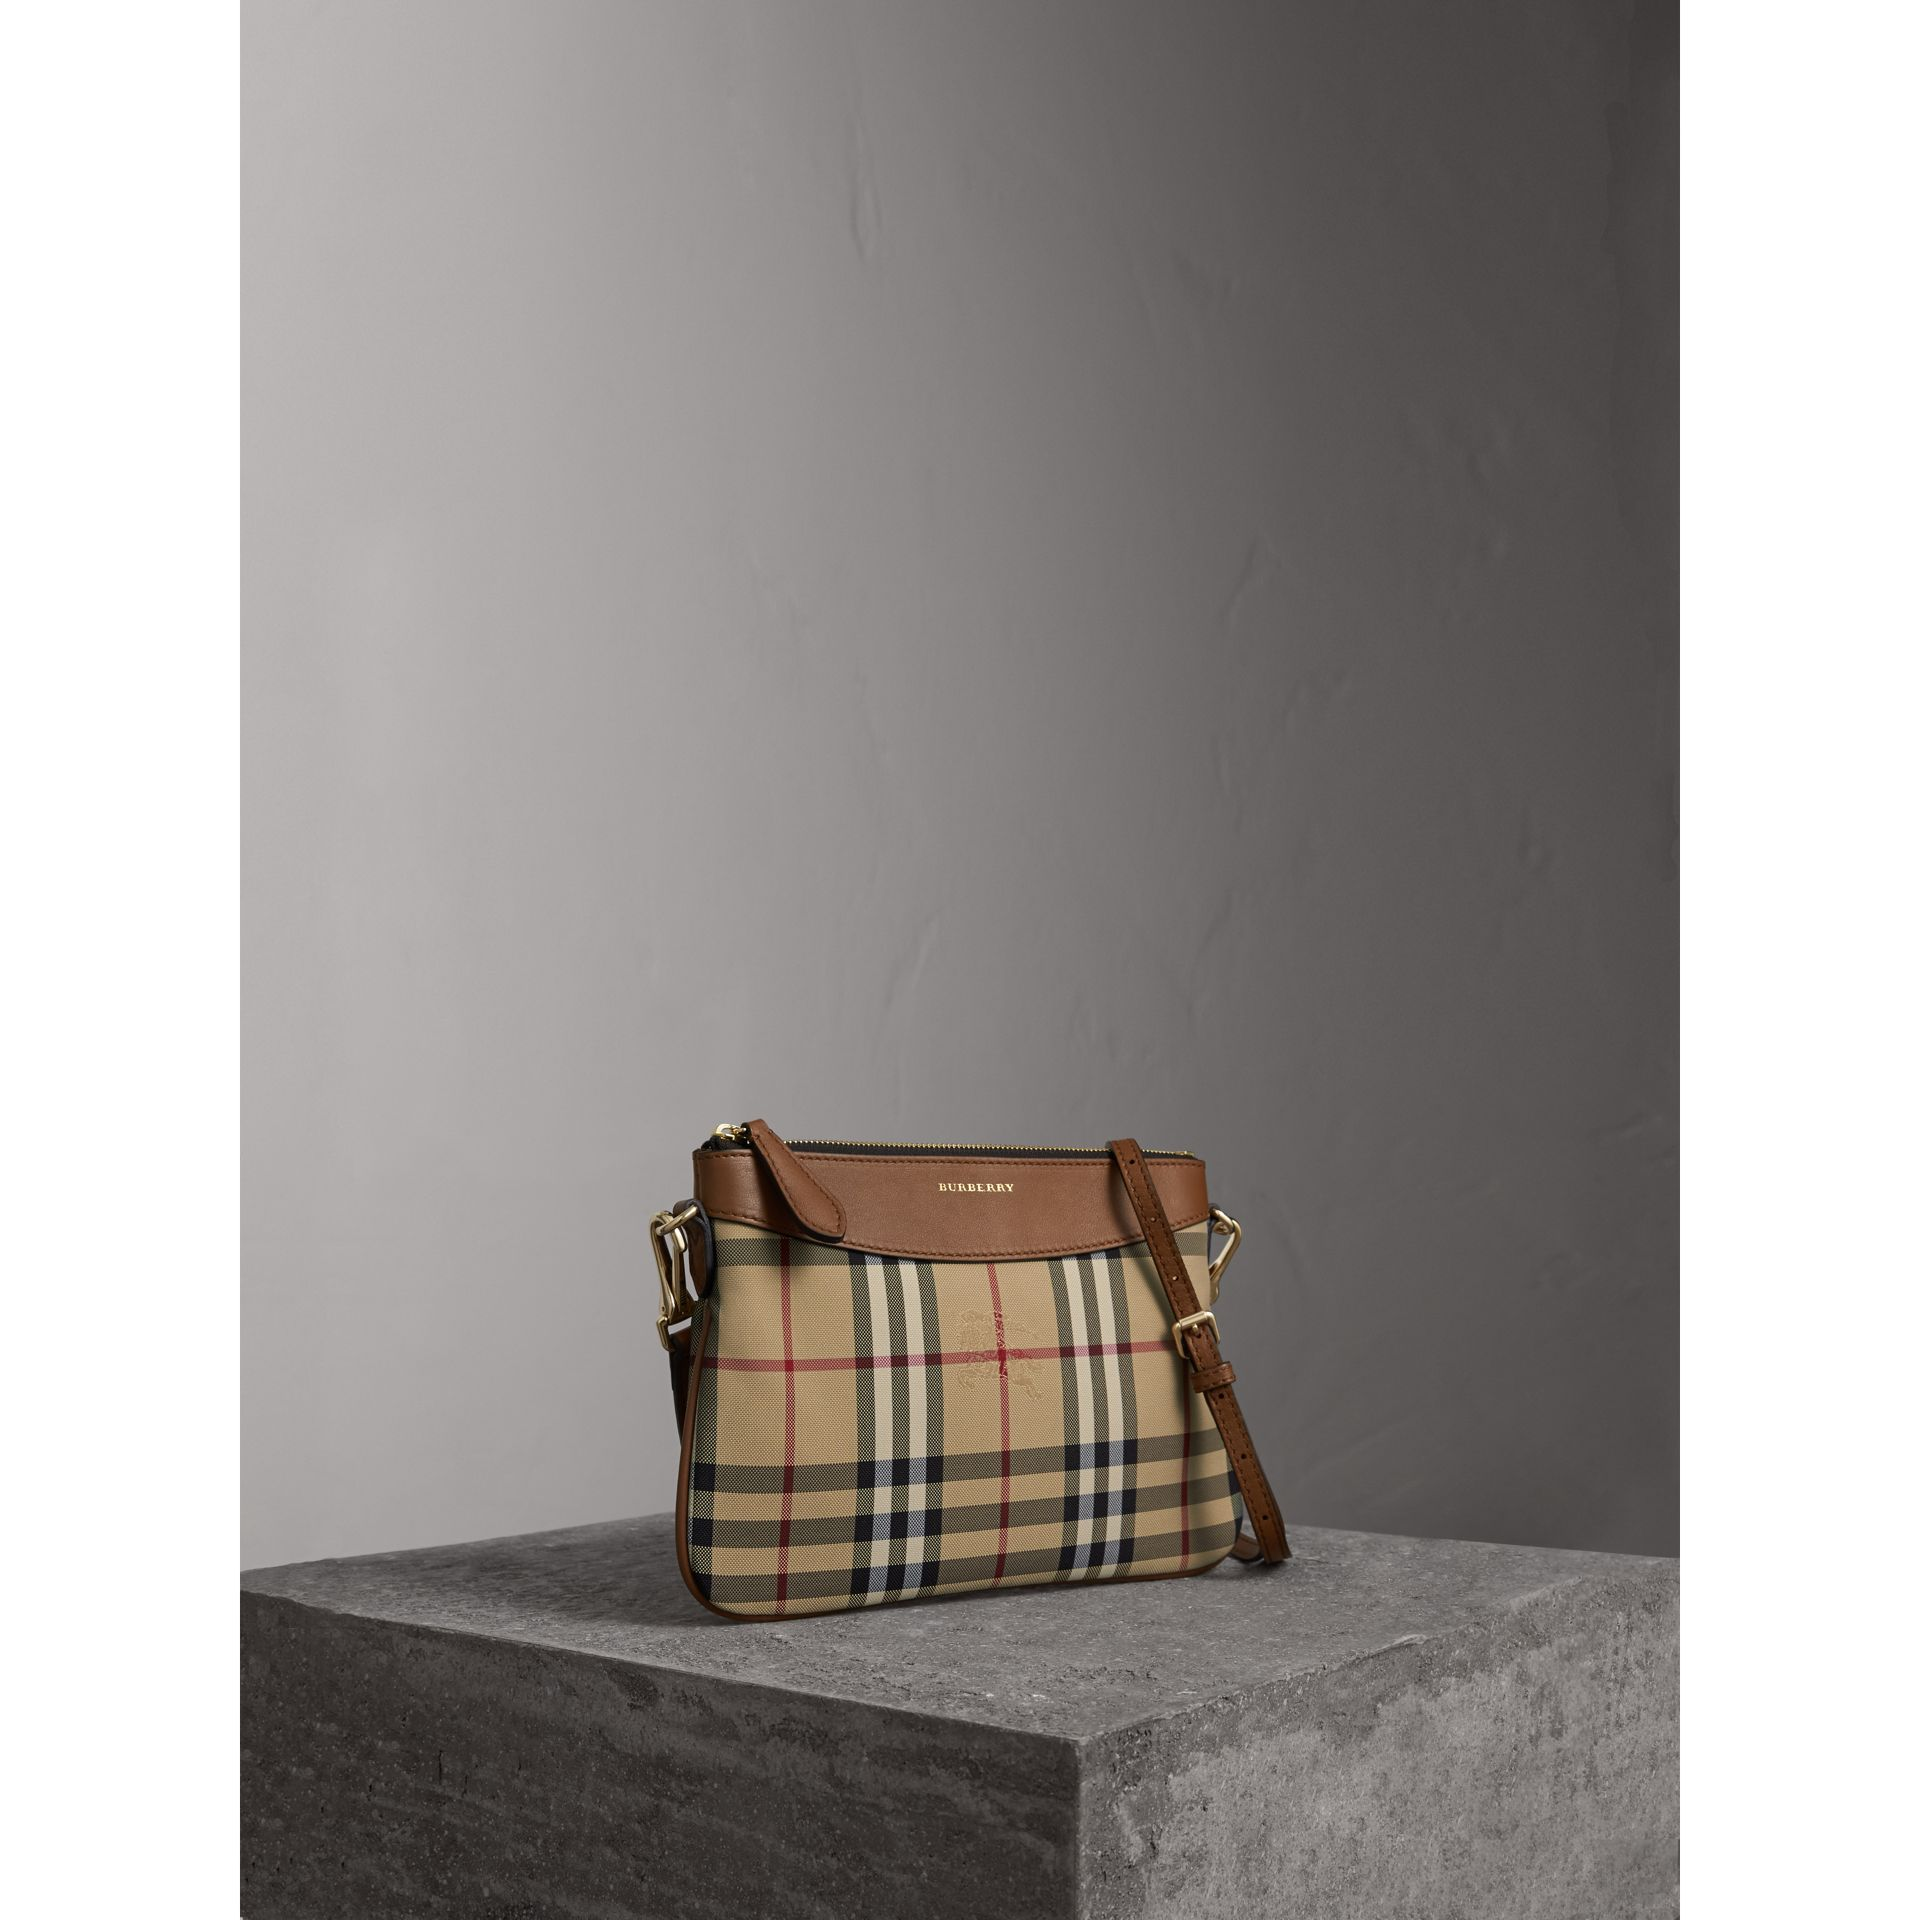 Horseferry Check and Leather Clutch Bag in Tan - Women | Burberry - gallery image 1